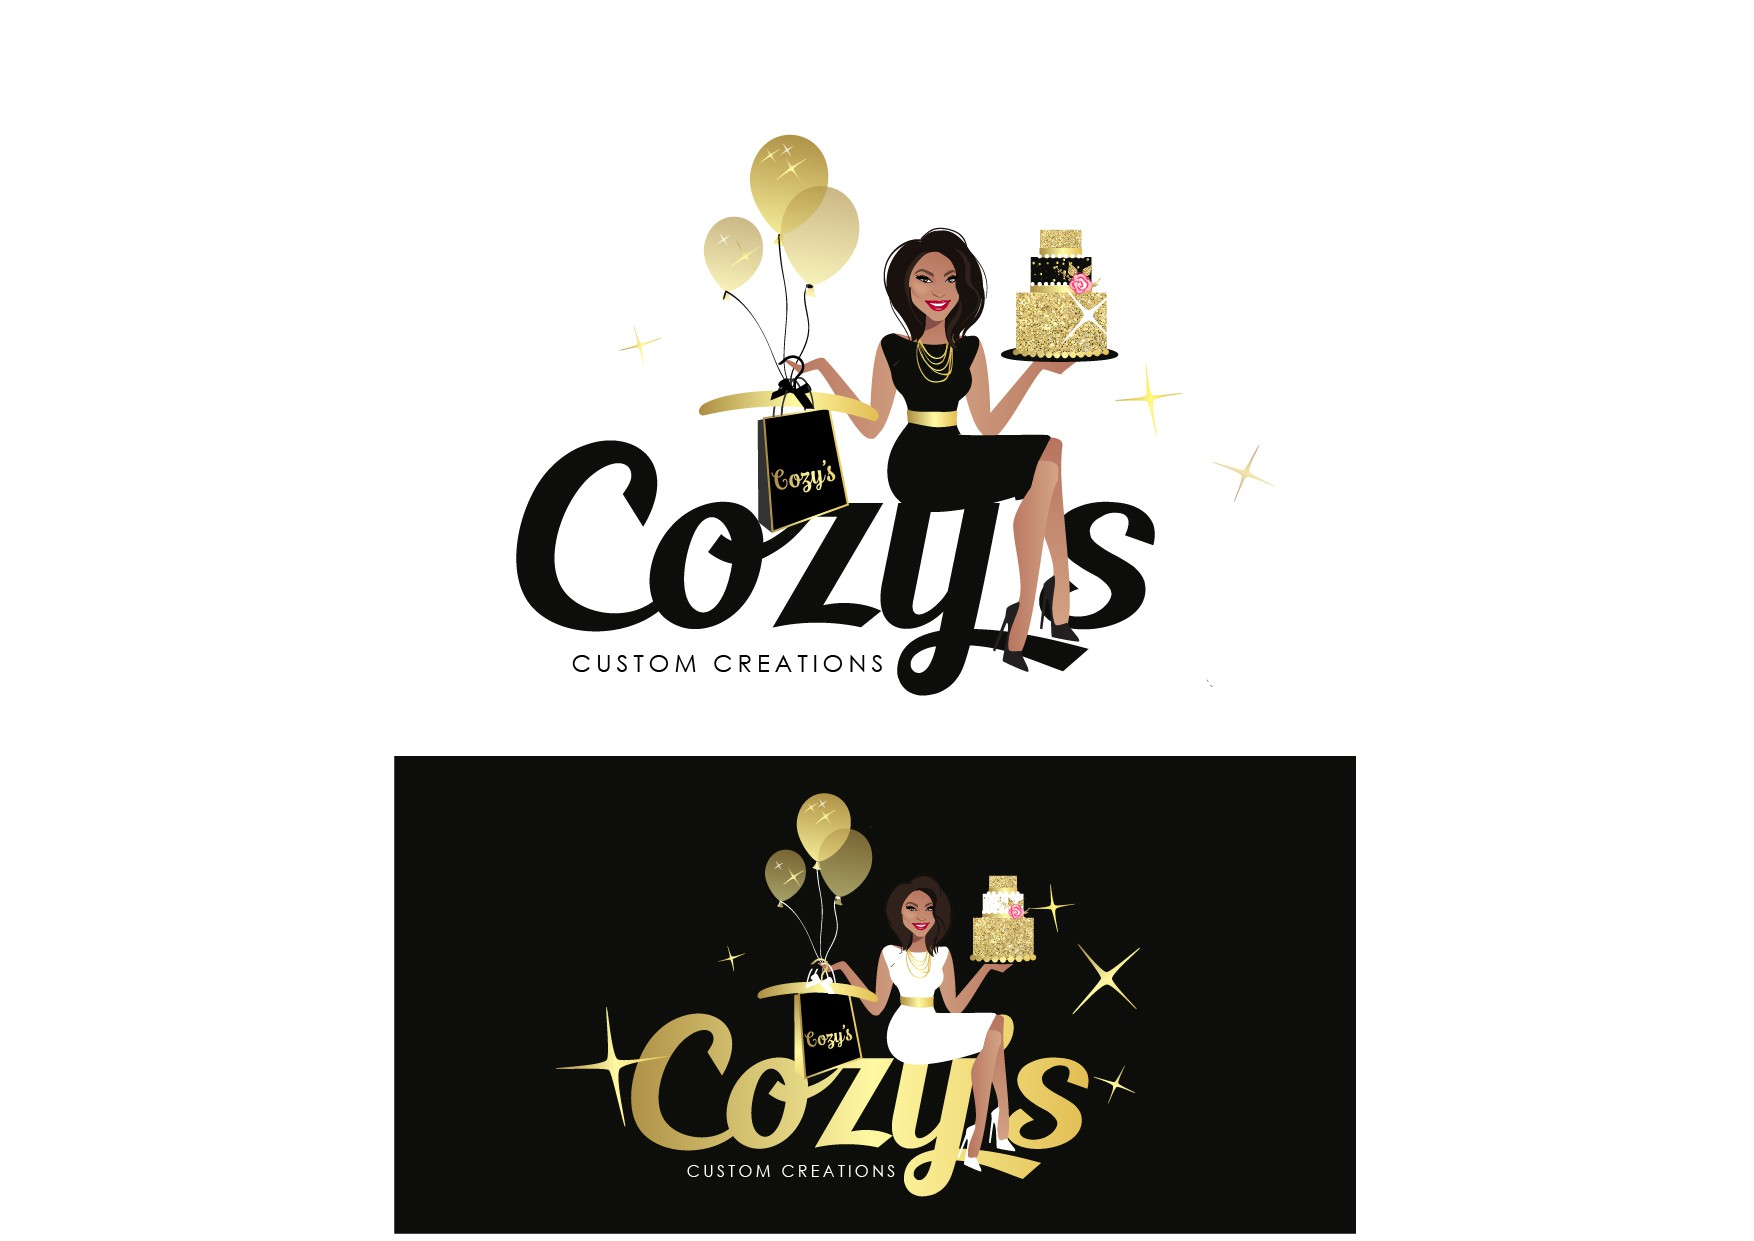 Unique custom apparel and gifts needs a classy and fresh logo!